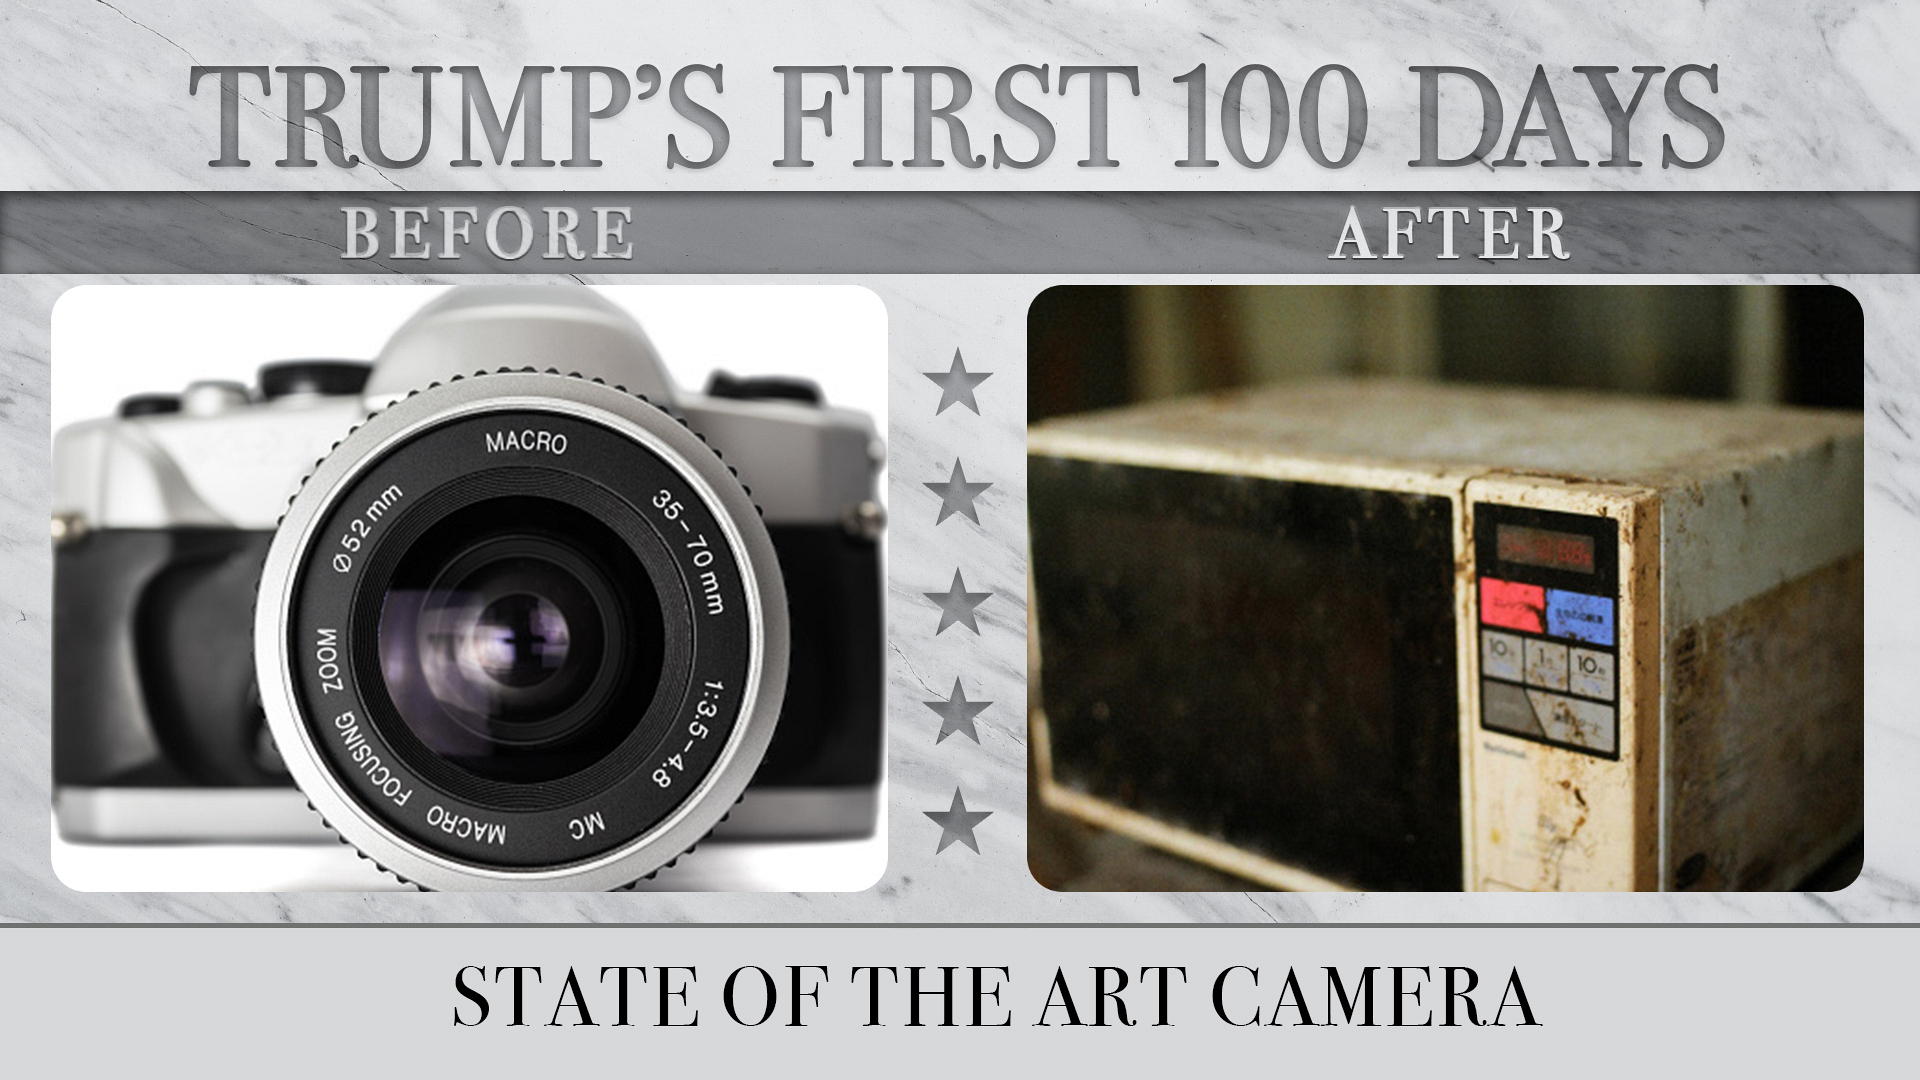 State Of The Art Camera